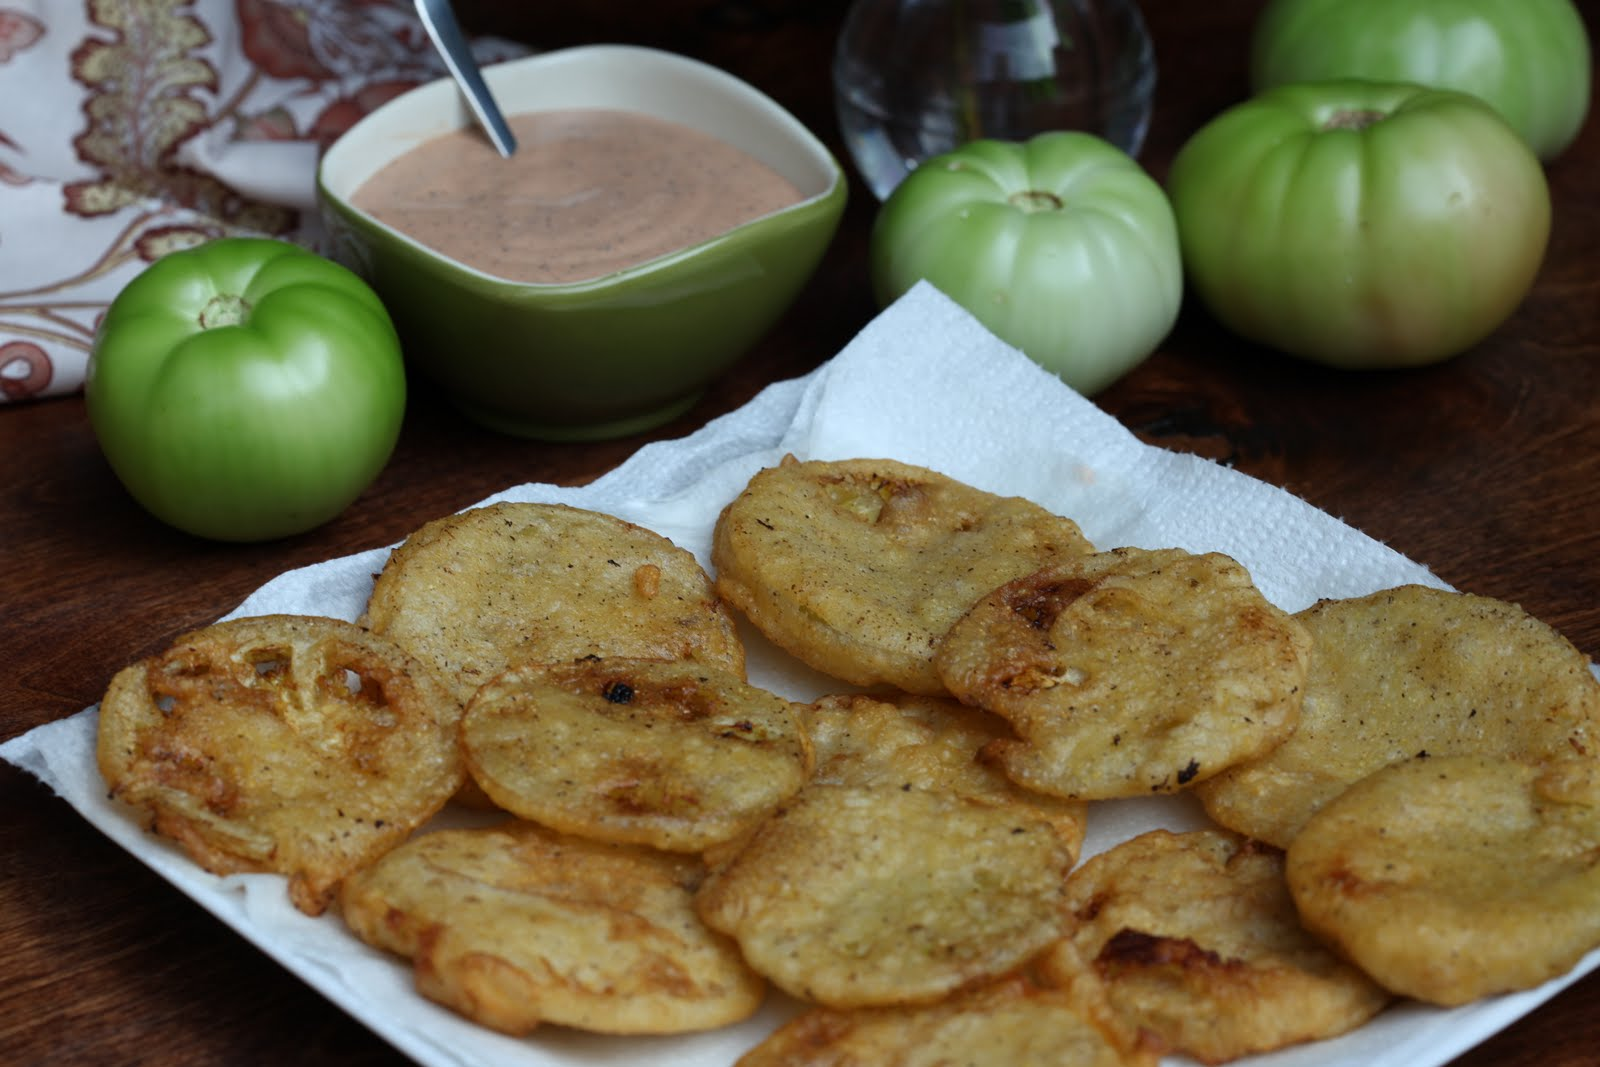 Bo's Bowl: Fried Green Tomatoes with Guthrie's Sauce